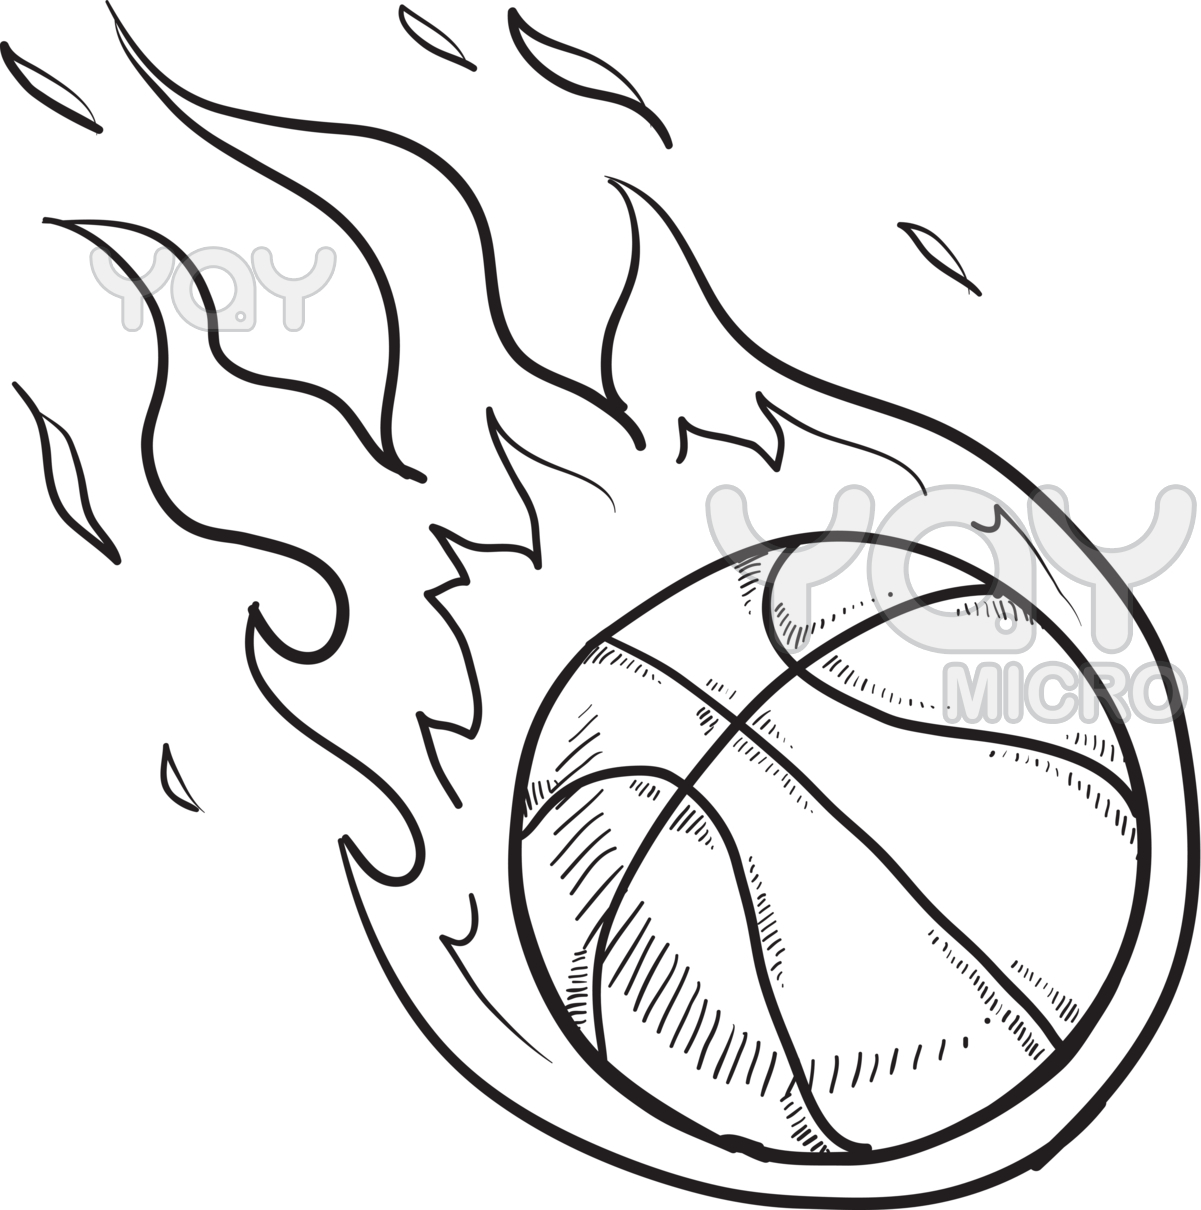 1201x1210 Advice Basketball Hoop Coloring Page Pages Education